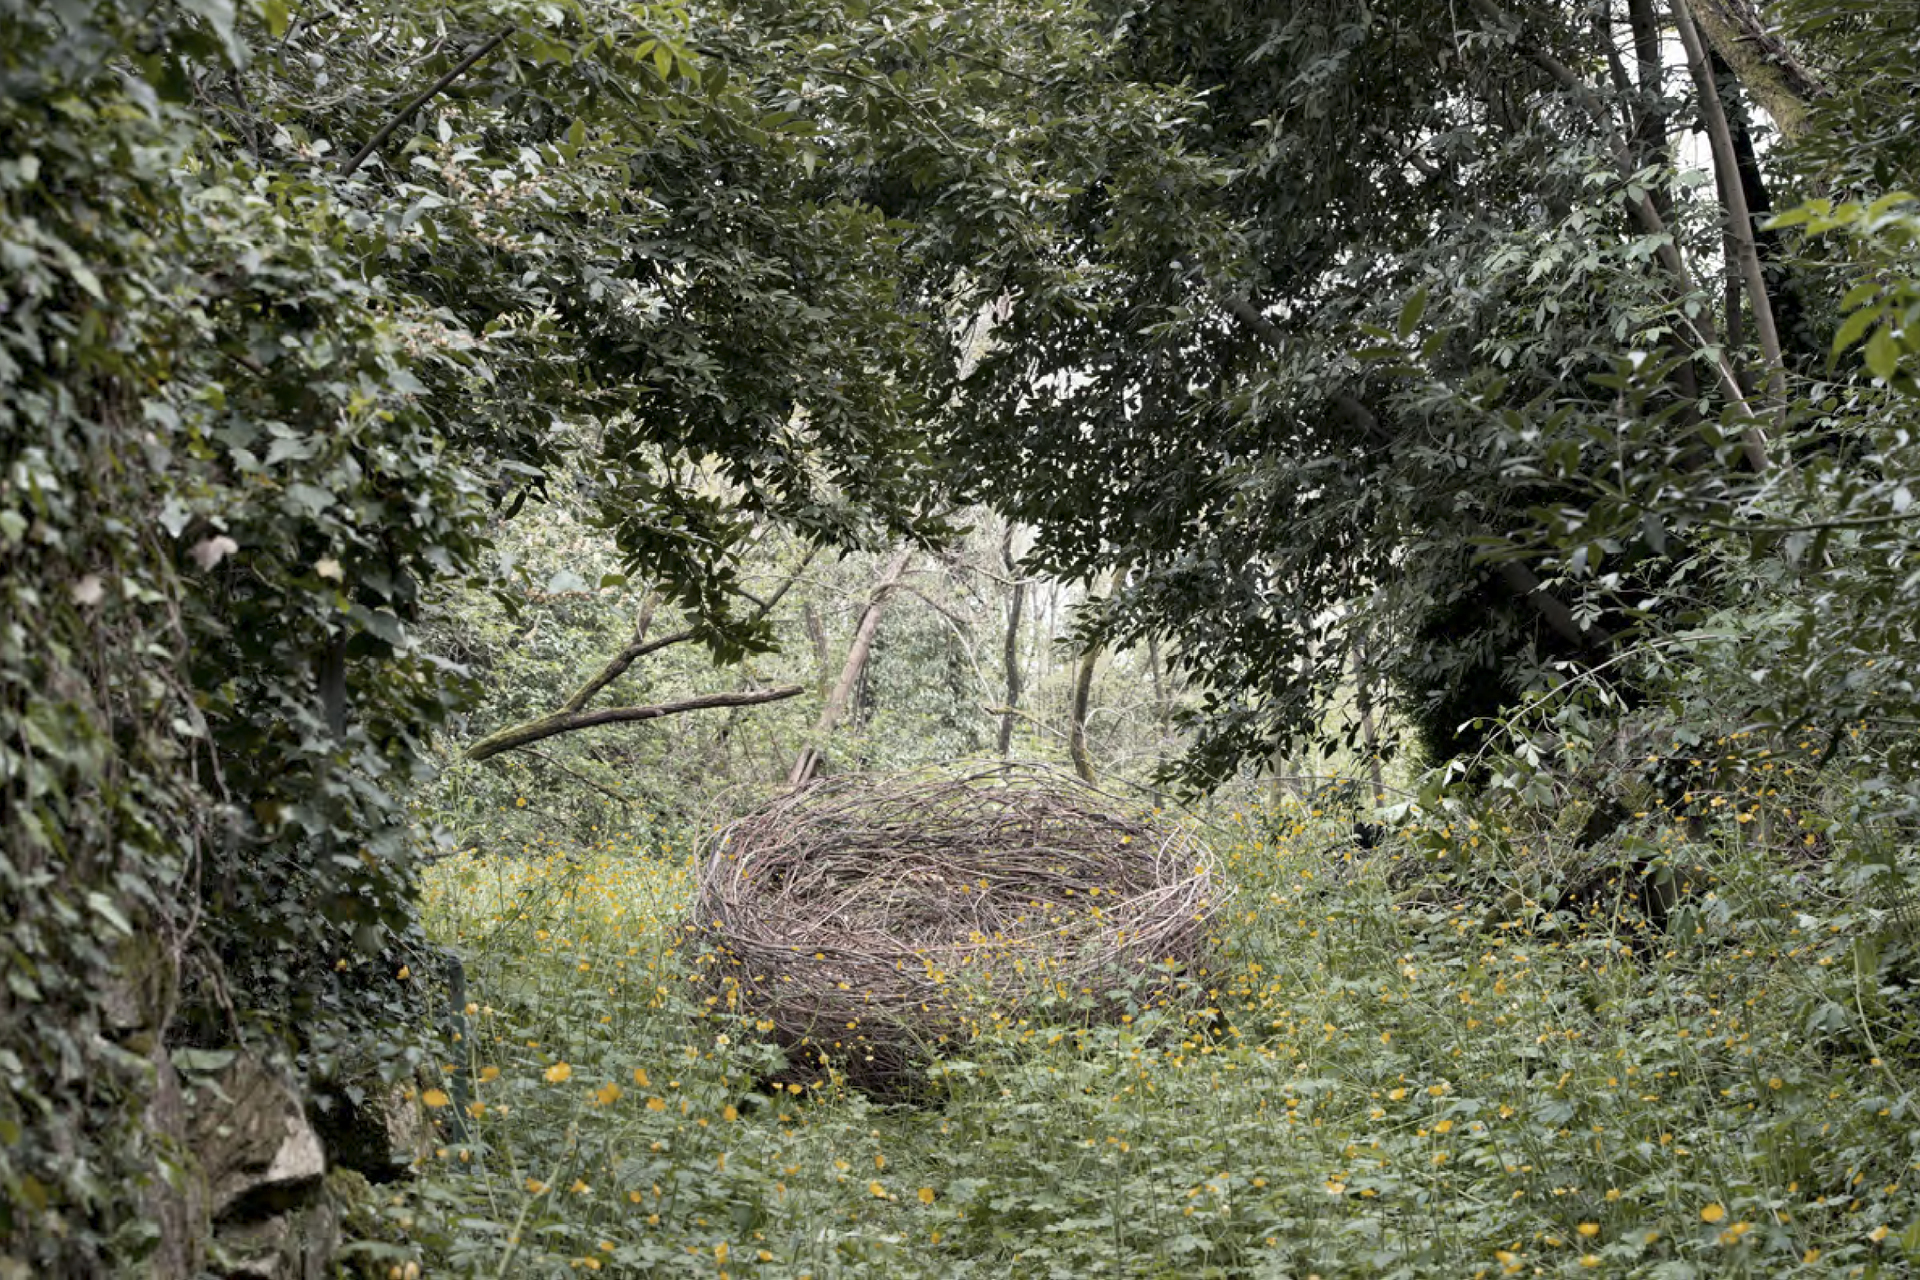 The Big Nest